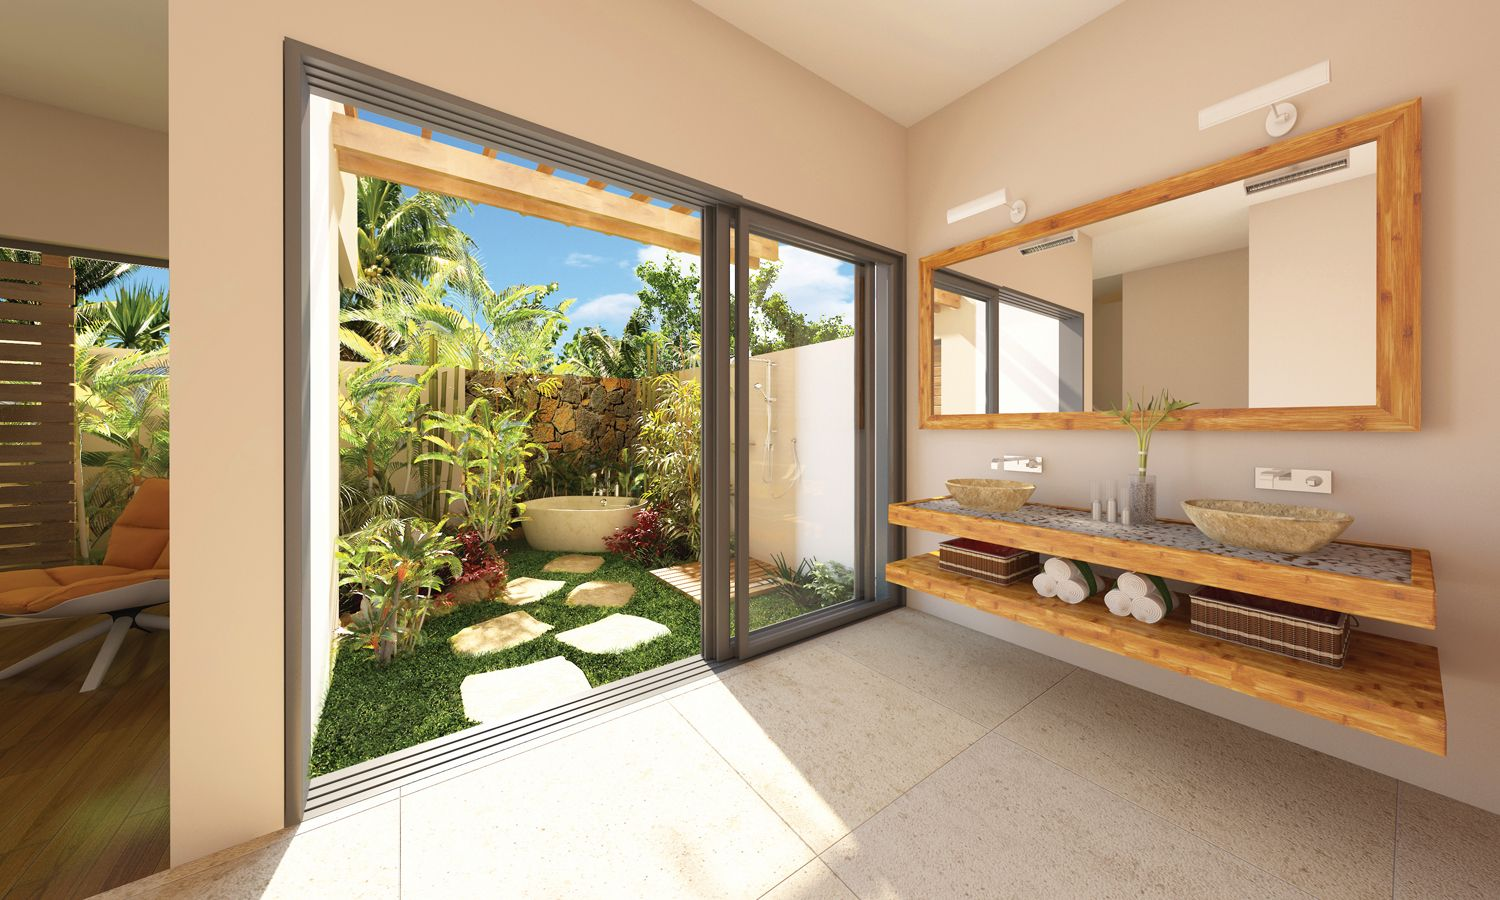 Lovely Tropical Outdoor Bathroom Floating Double Vanity Stone Best Luxury Outdoor Bathrooms Decorating Design